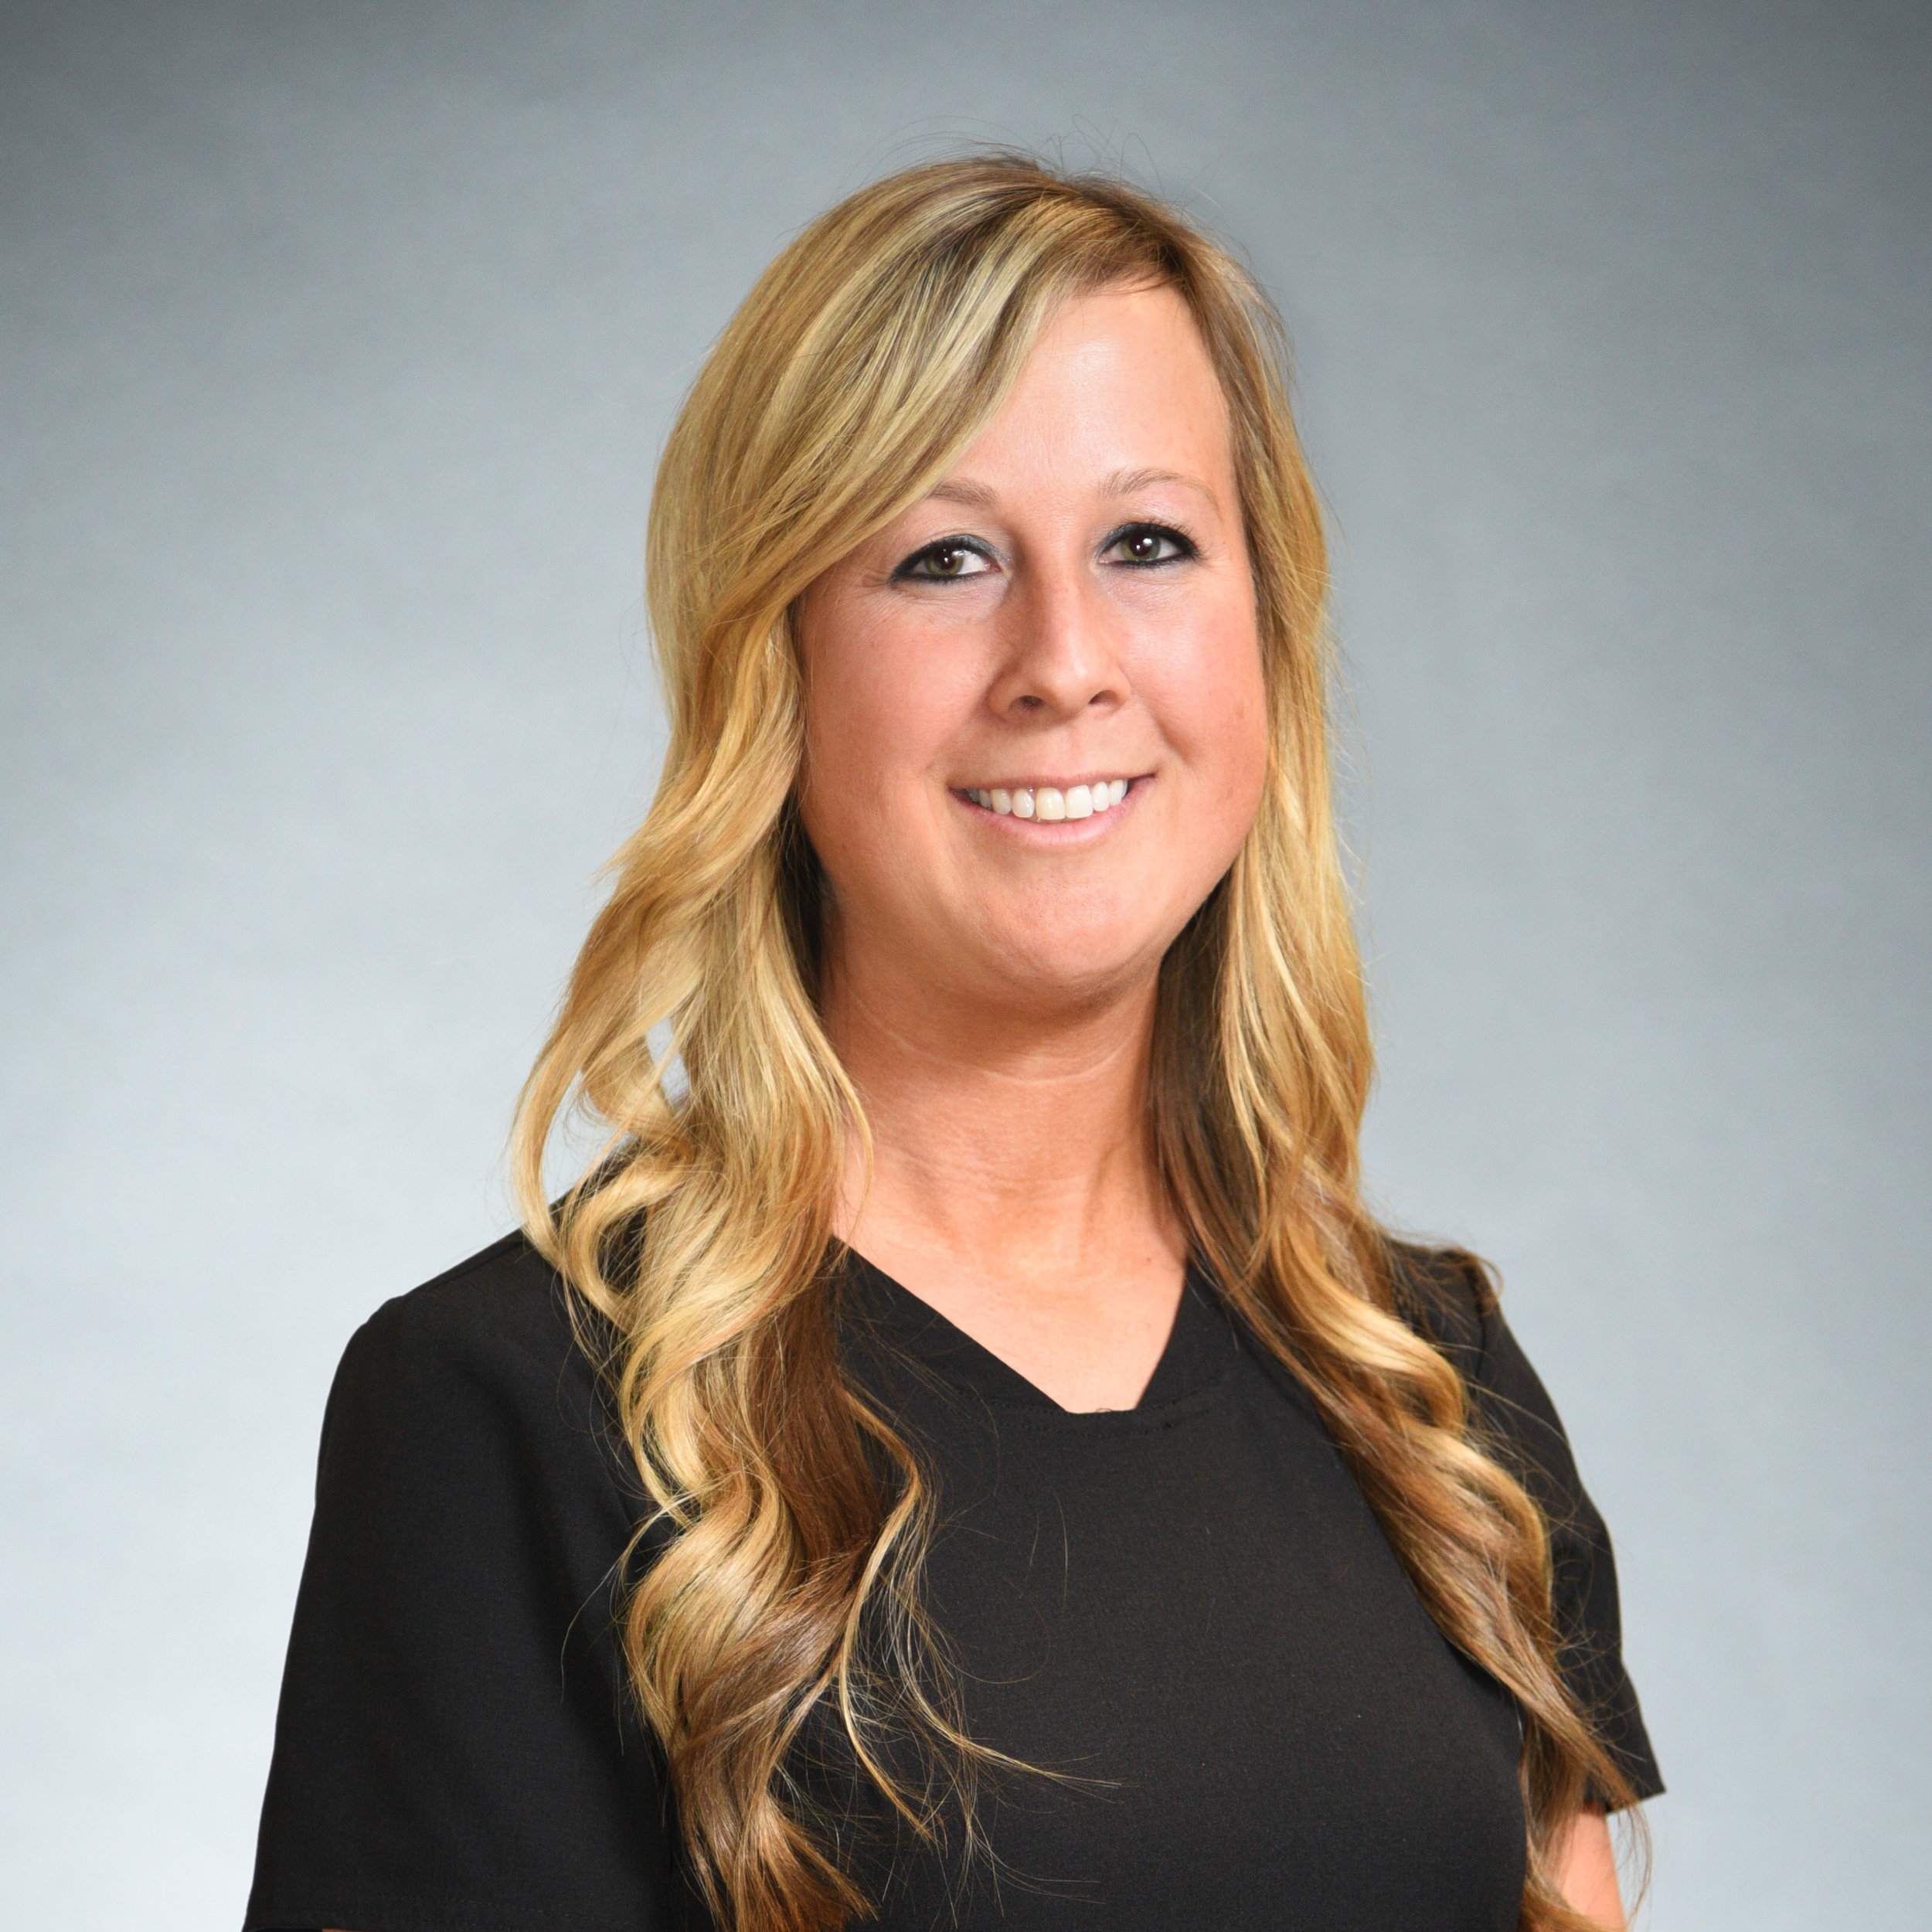 Katie   Clinical Staff   Katie has been a part of the McNutt Pediatric Dentistry office family for over 10 years.